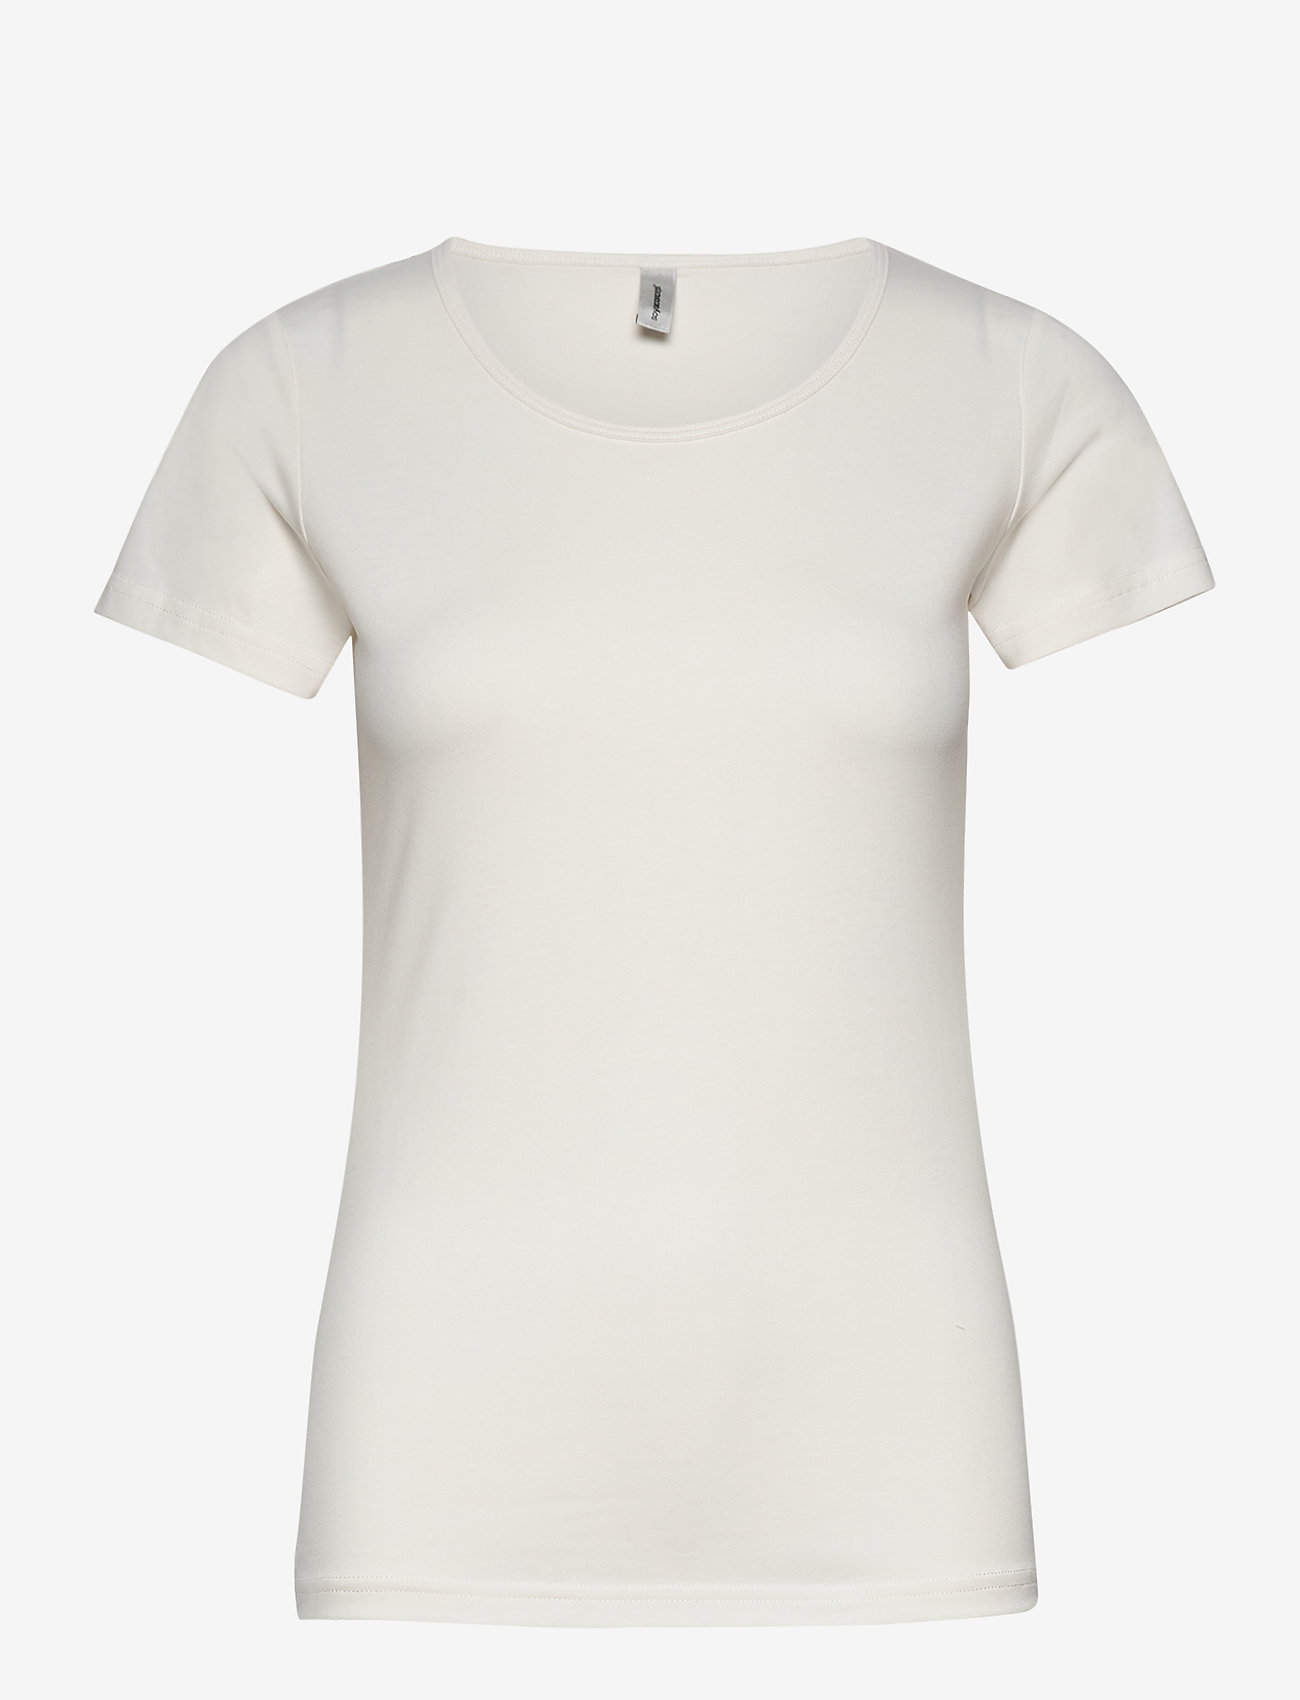 Soyaconcept - SC-PYLLE - t-shirt & tops - offwhite - 0